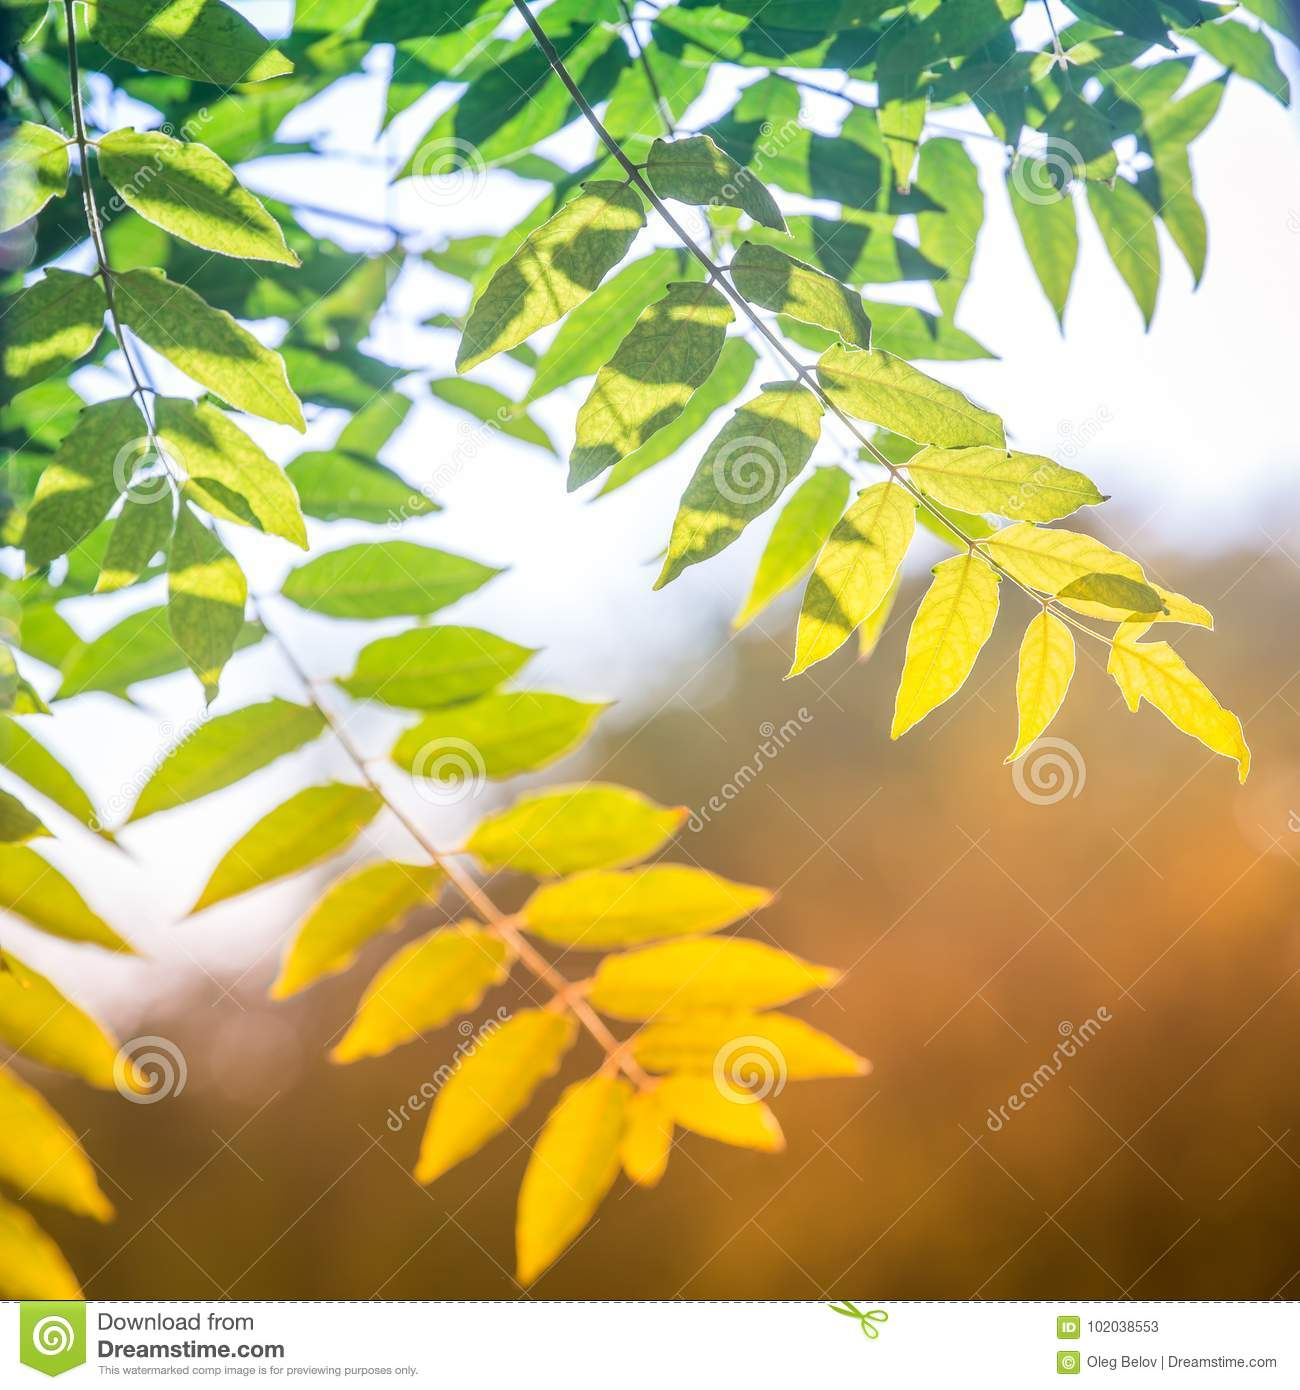 Colorful green-yellow ash tree leaves in the rays of the warm sun as a symbol of the passage from summer to autumn